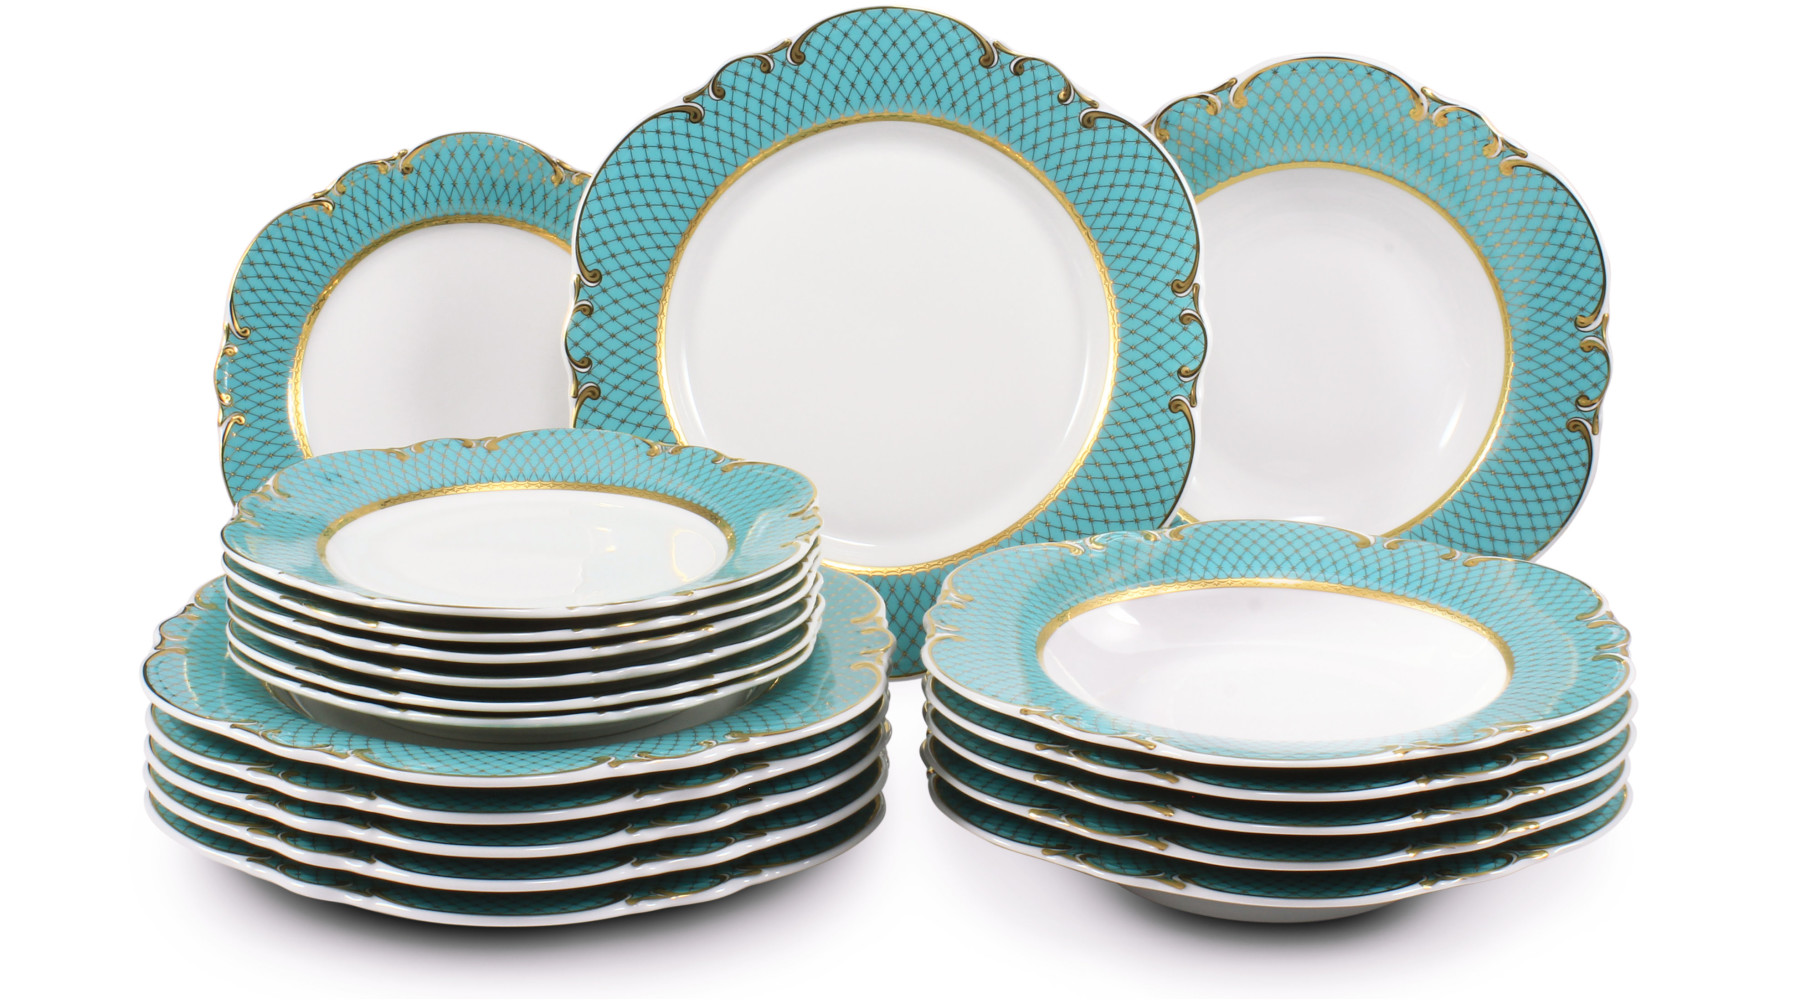 Plate set 18-piece - Roses under the stars